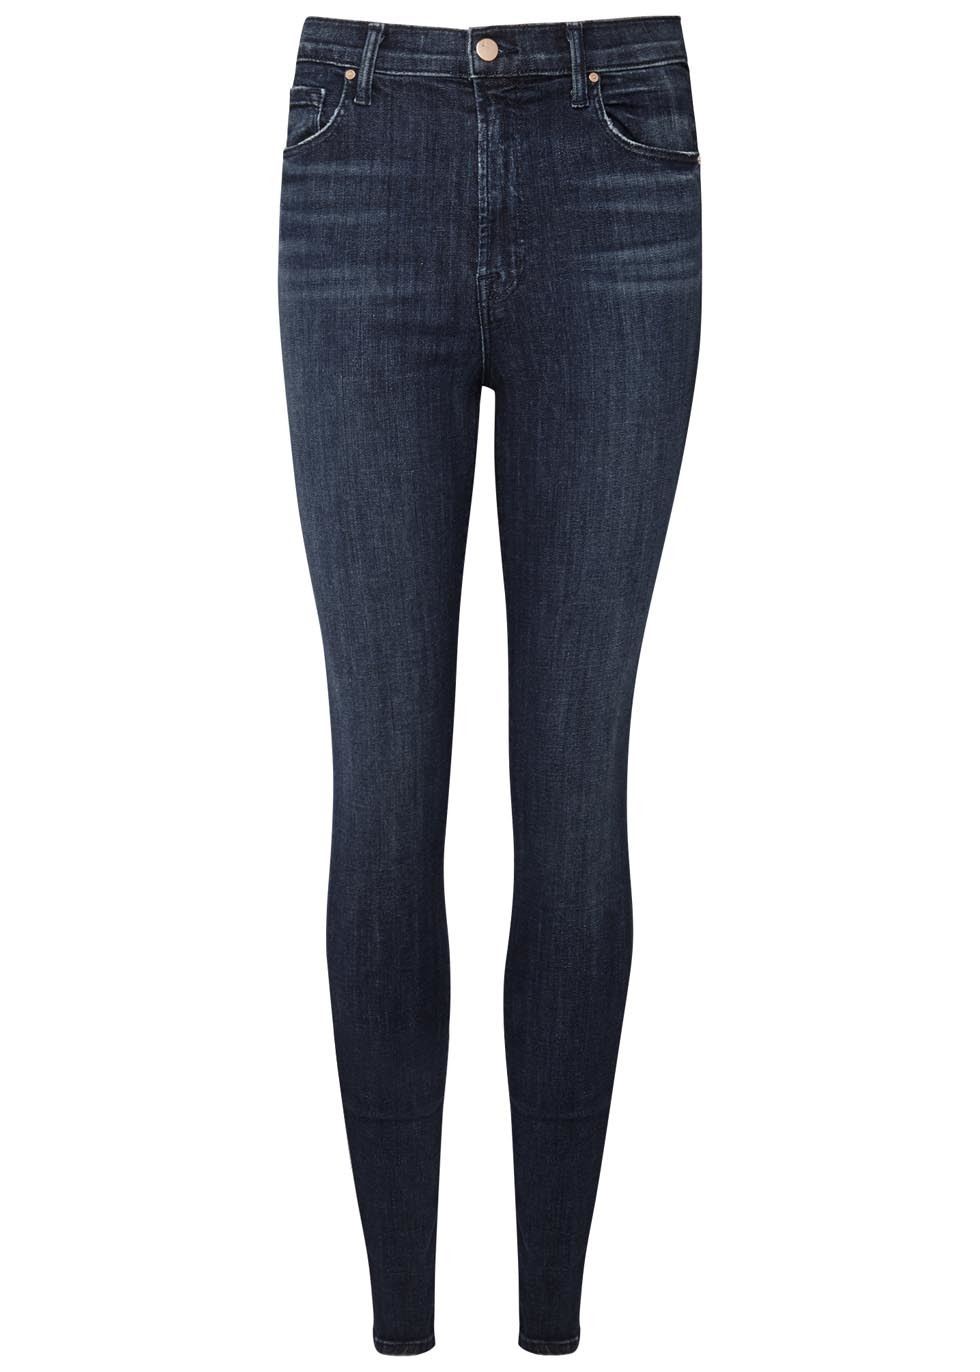 Carolina Indigo High Rise Skinny Jeans - style: skinny leg; length: standard; pattern: plain; waist: high rise; pocket detail: traditional 5 pocket; predominant colour: navy; occasions: casual, evening, creative work; fibres: cotton - stretch; jeans detail: dark wash; texture group: denim; pattern type: fabric; wardrobe: basic; season: a/w 2016